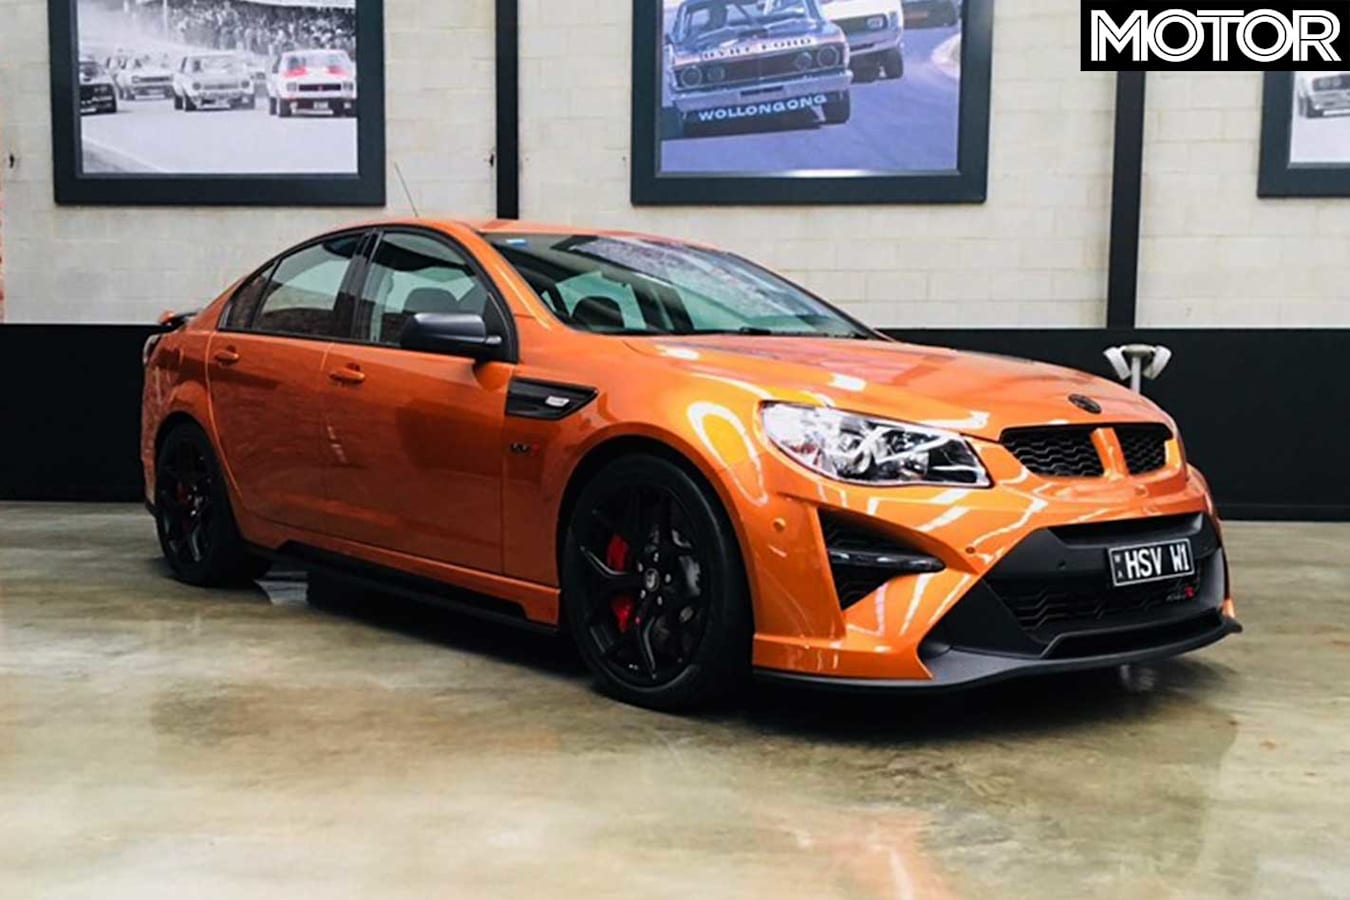 Classifieds Of The Week Hsv W 1 Front Jpg